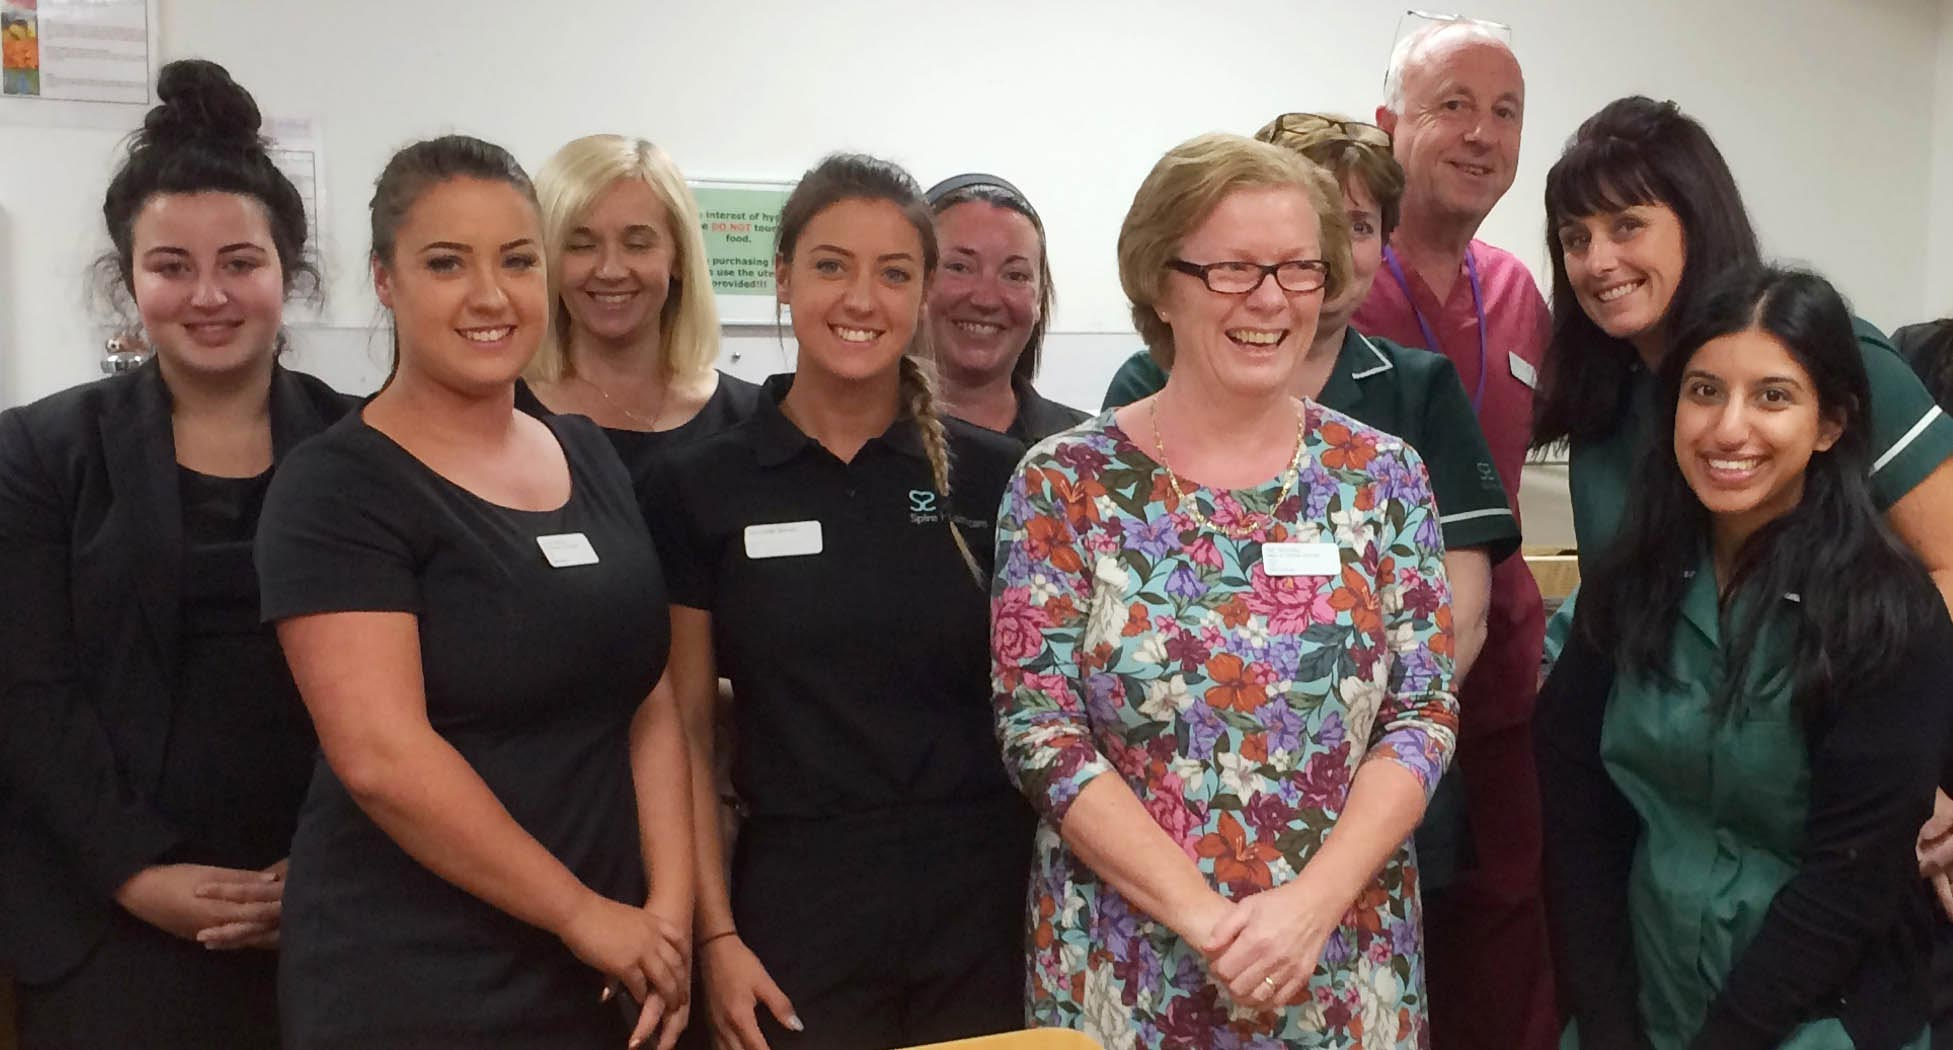 Pat says thirty years of nursing has been a privilege